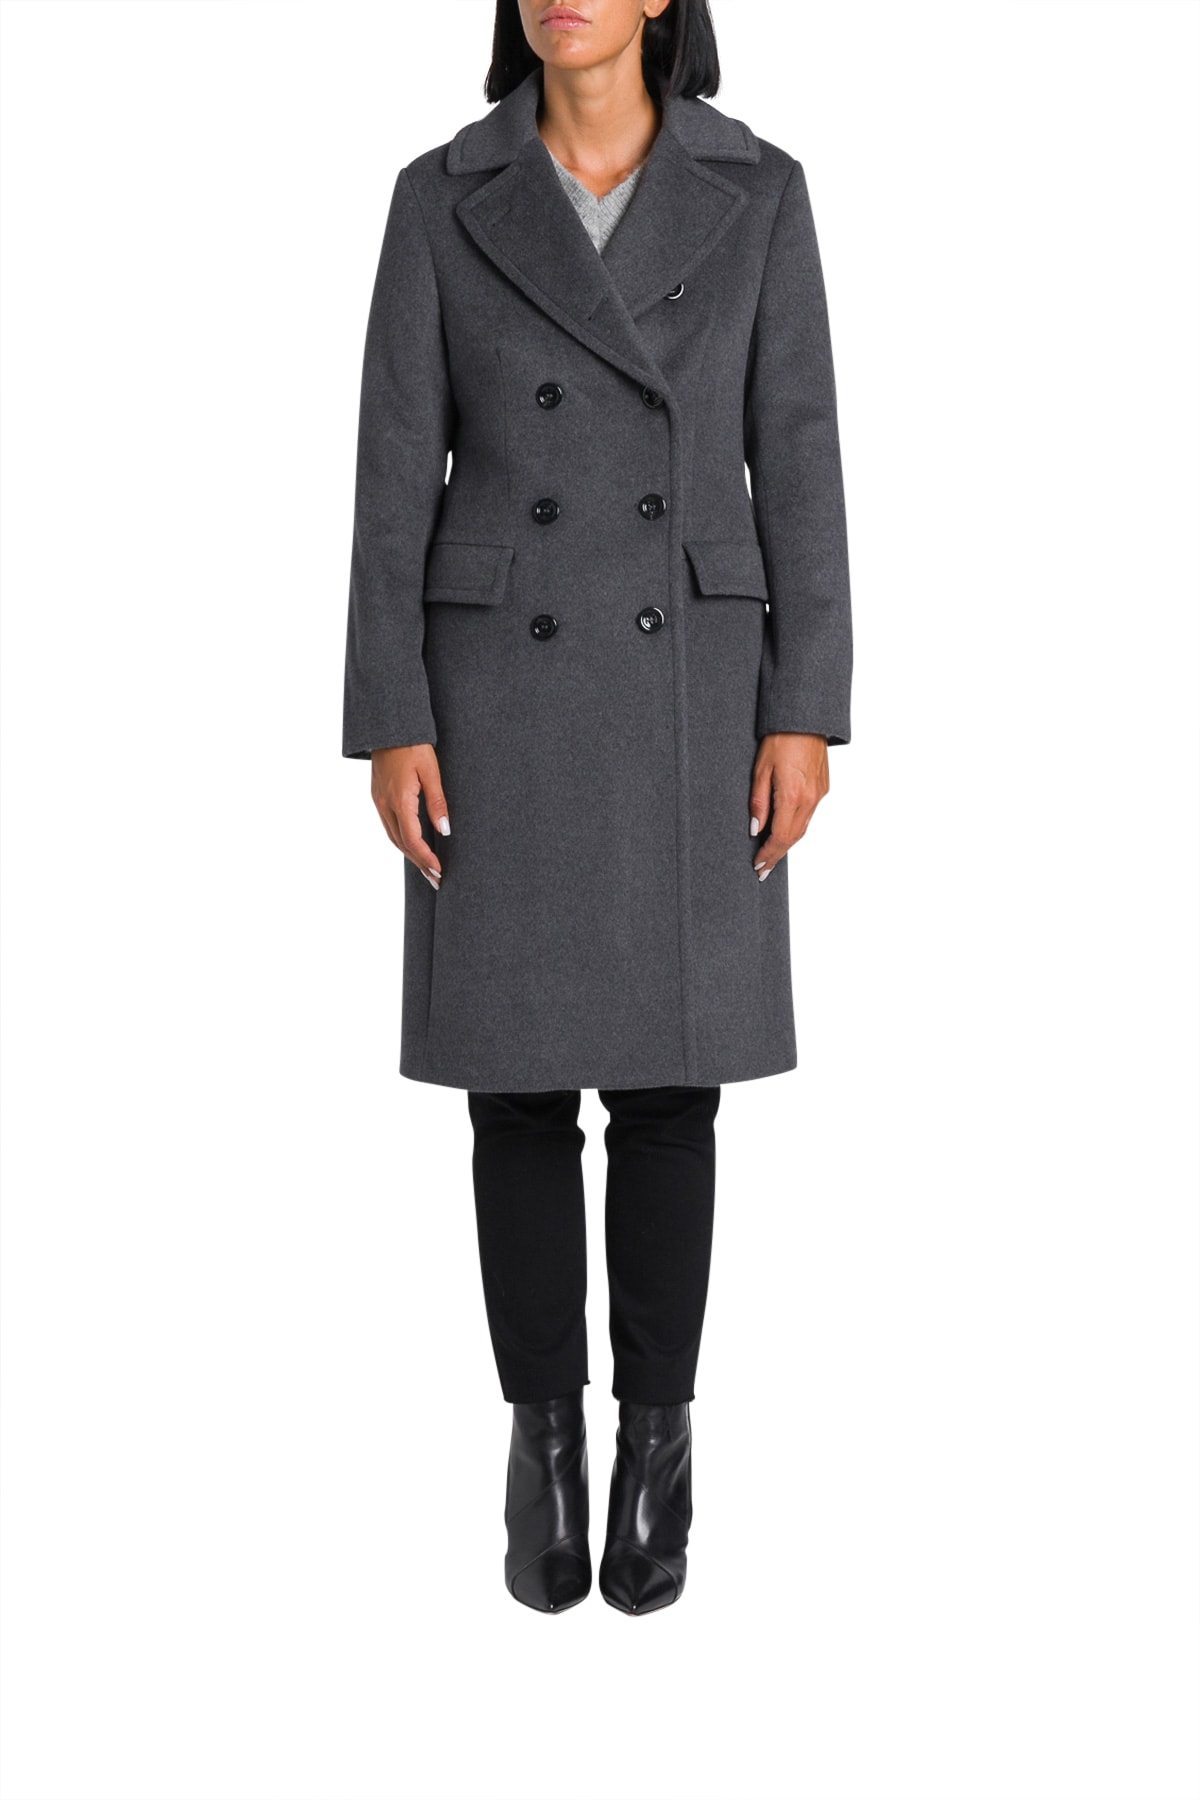 Harris Wharf London Long Military Coat